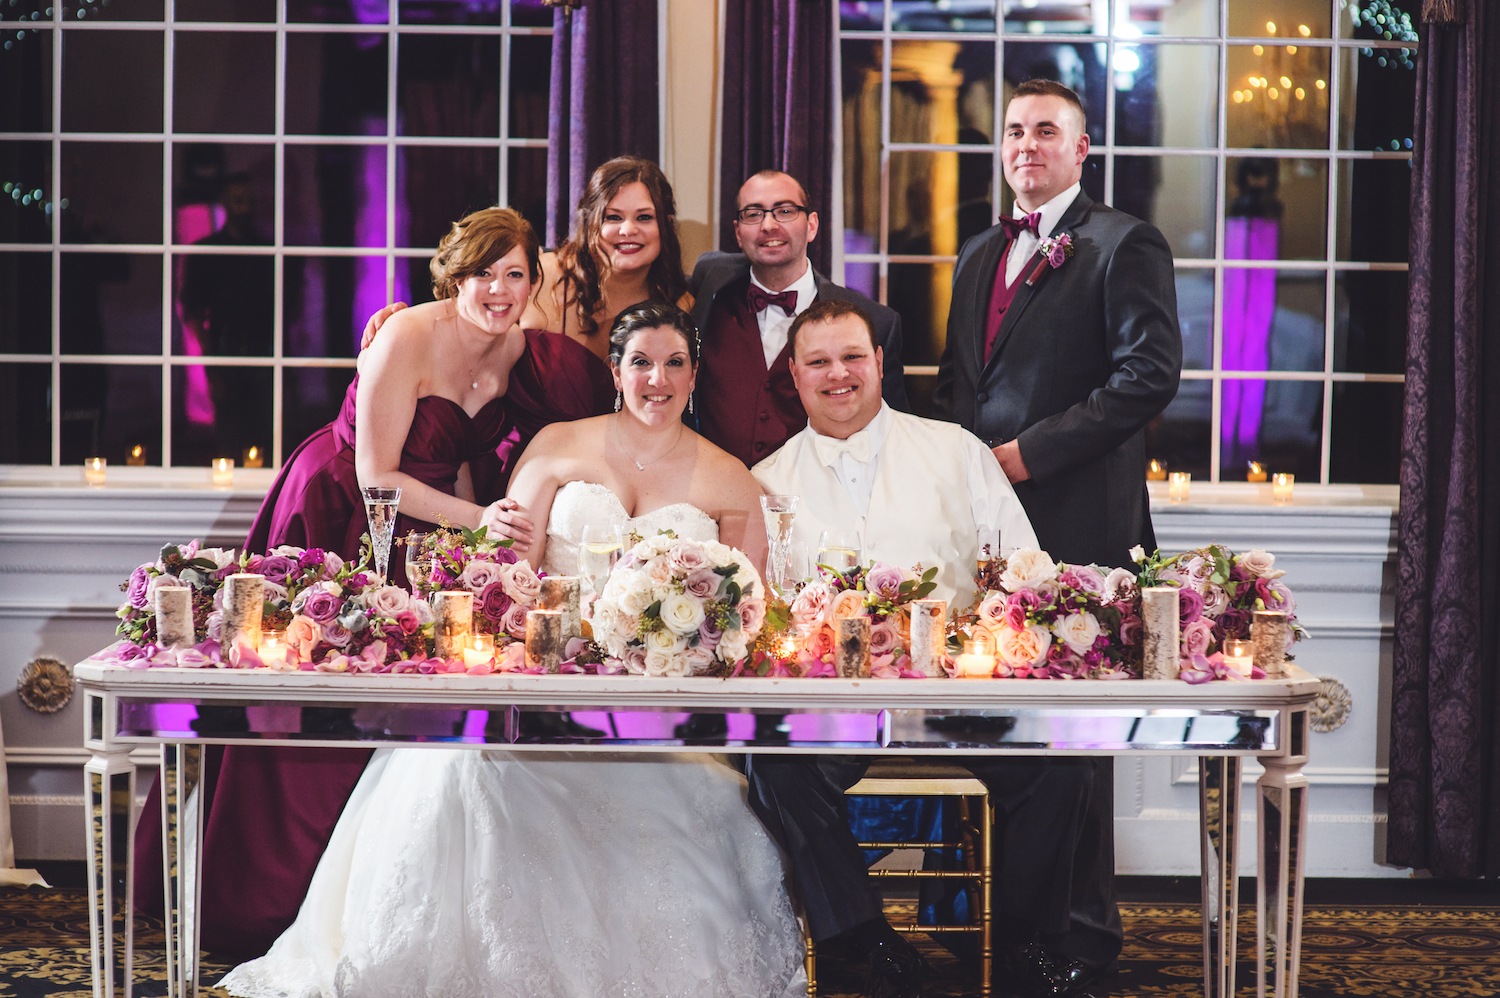 tara-richard-&-guests-by-sweetheart-table-nj-wedding-photography